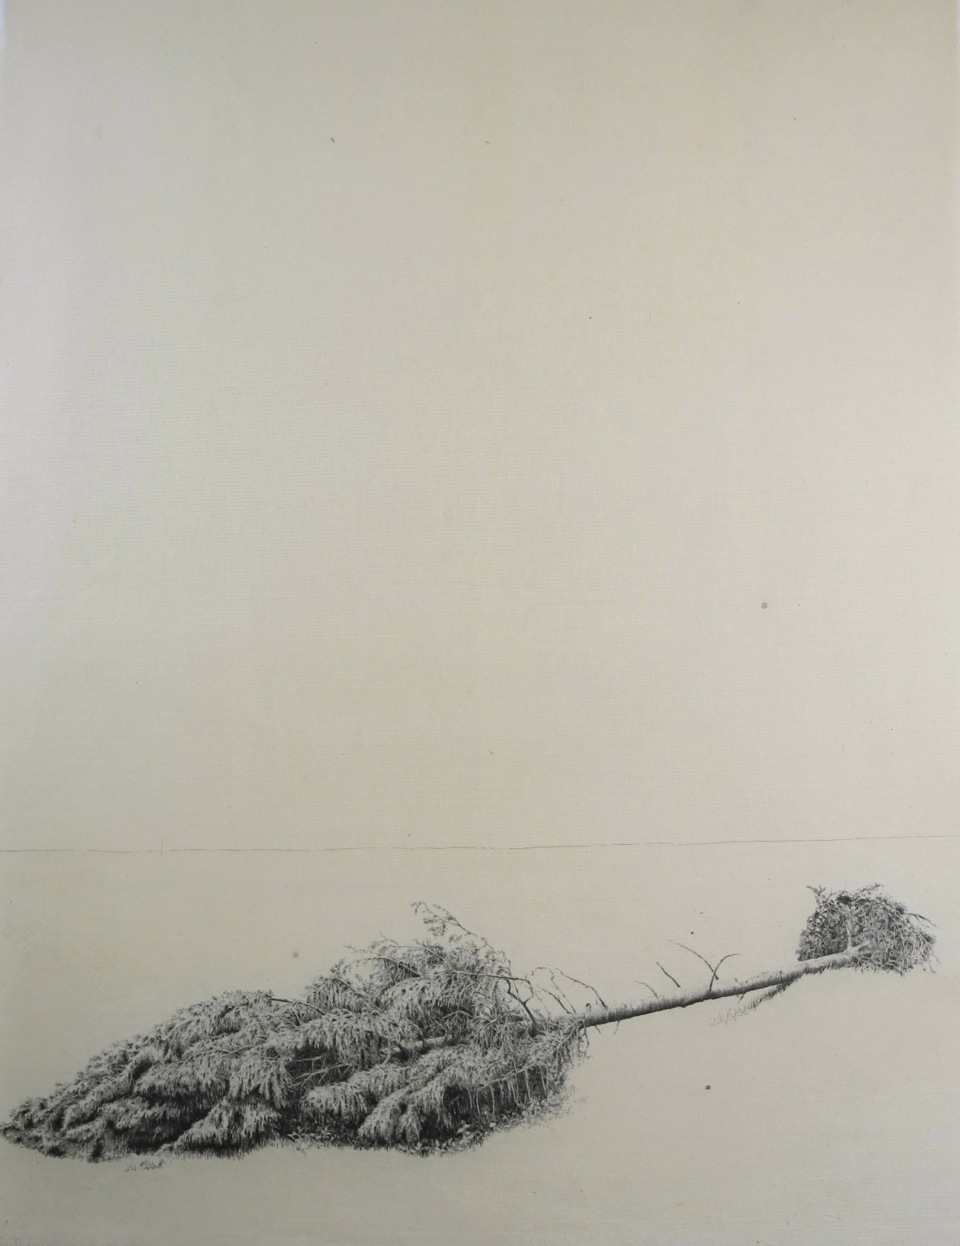 Fallen Tree III  2018 SOLD  Monotype drawing: 65 x 49 cm approx.